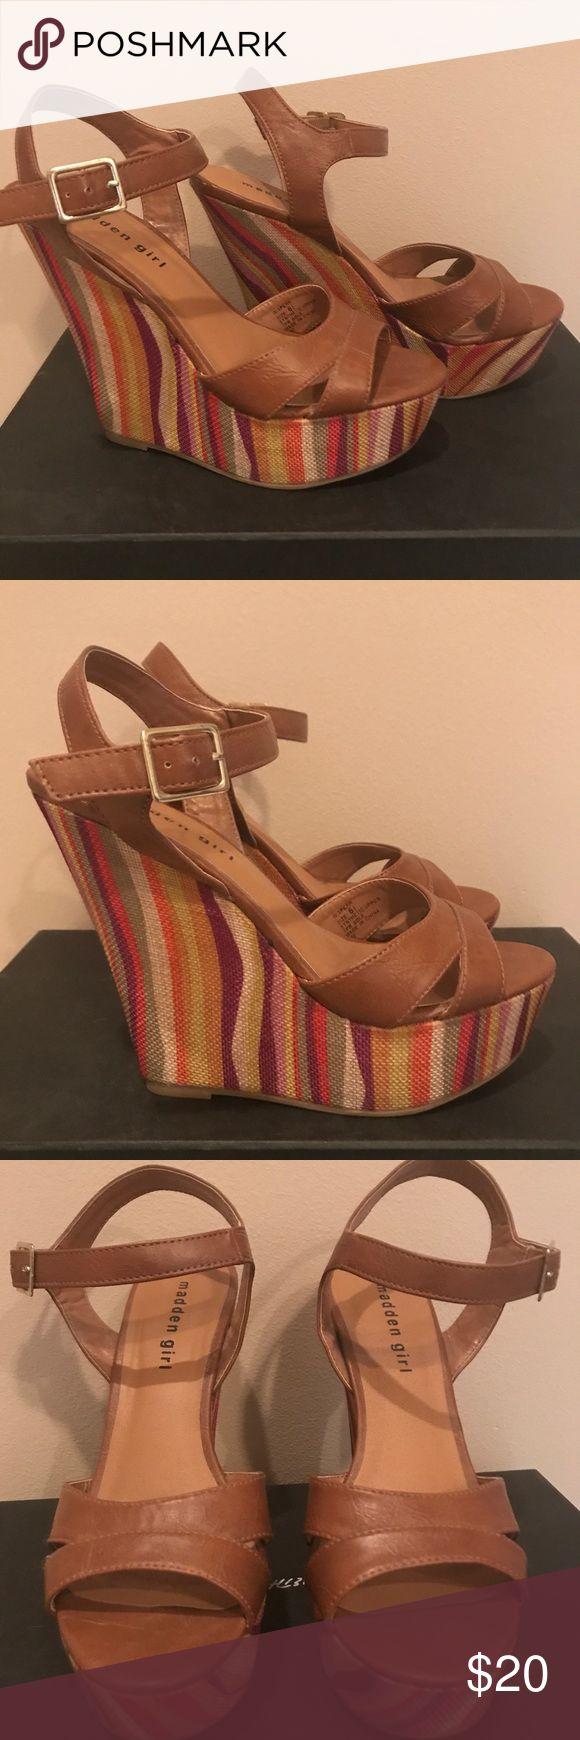 Wedges Super cute multi colored wedges. Can be worn with anything and very comfortable. In really great condition. Madden Girl Shoes Wedges